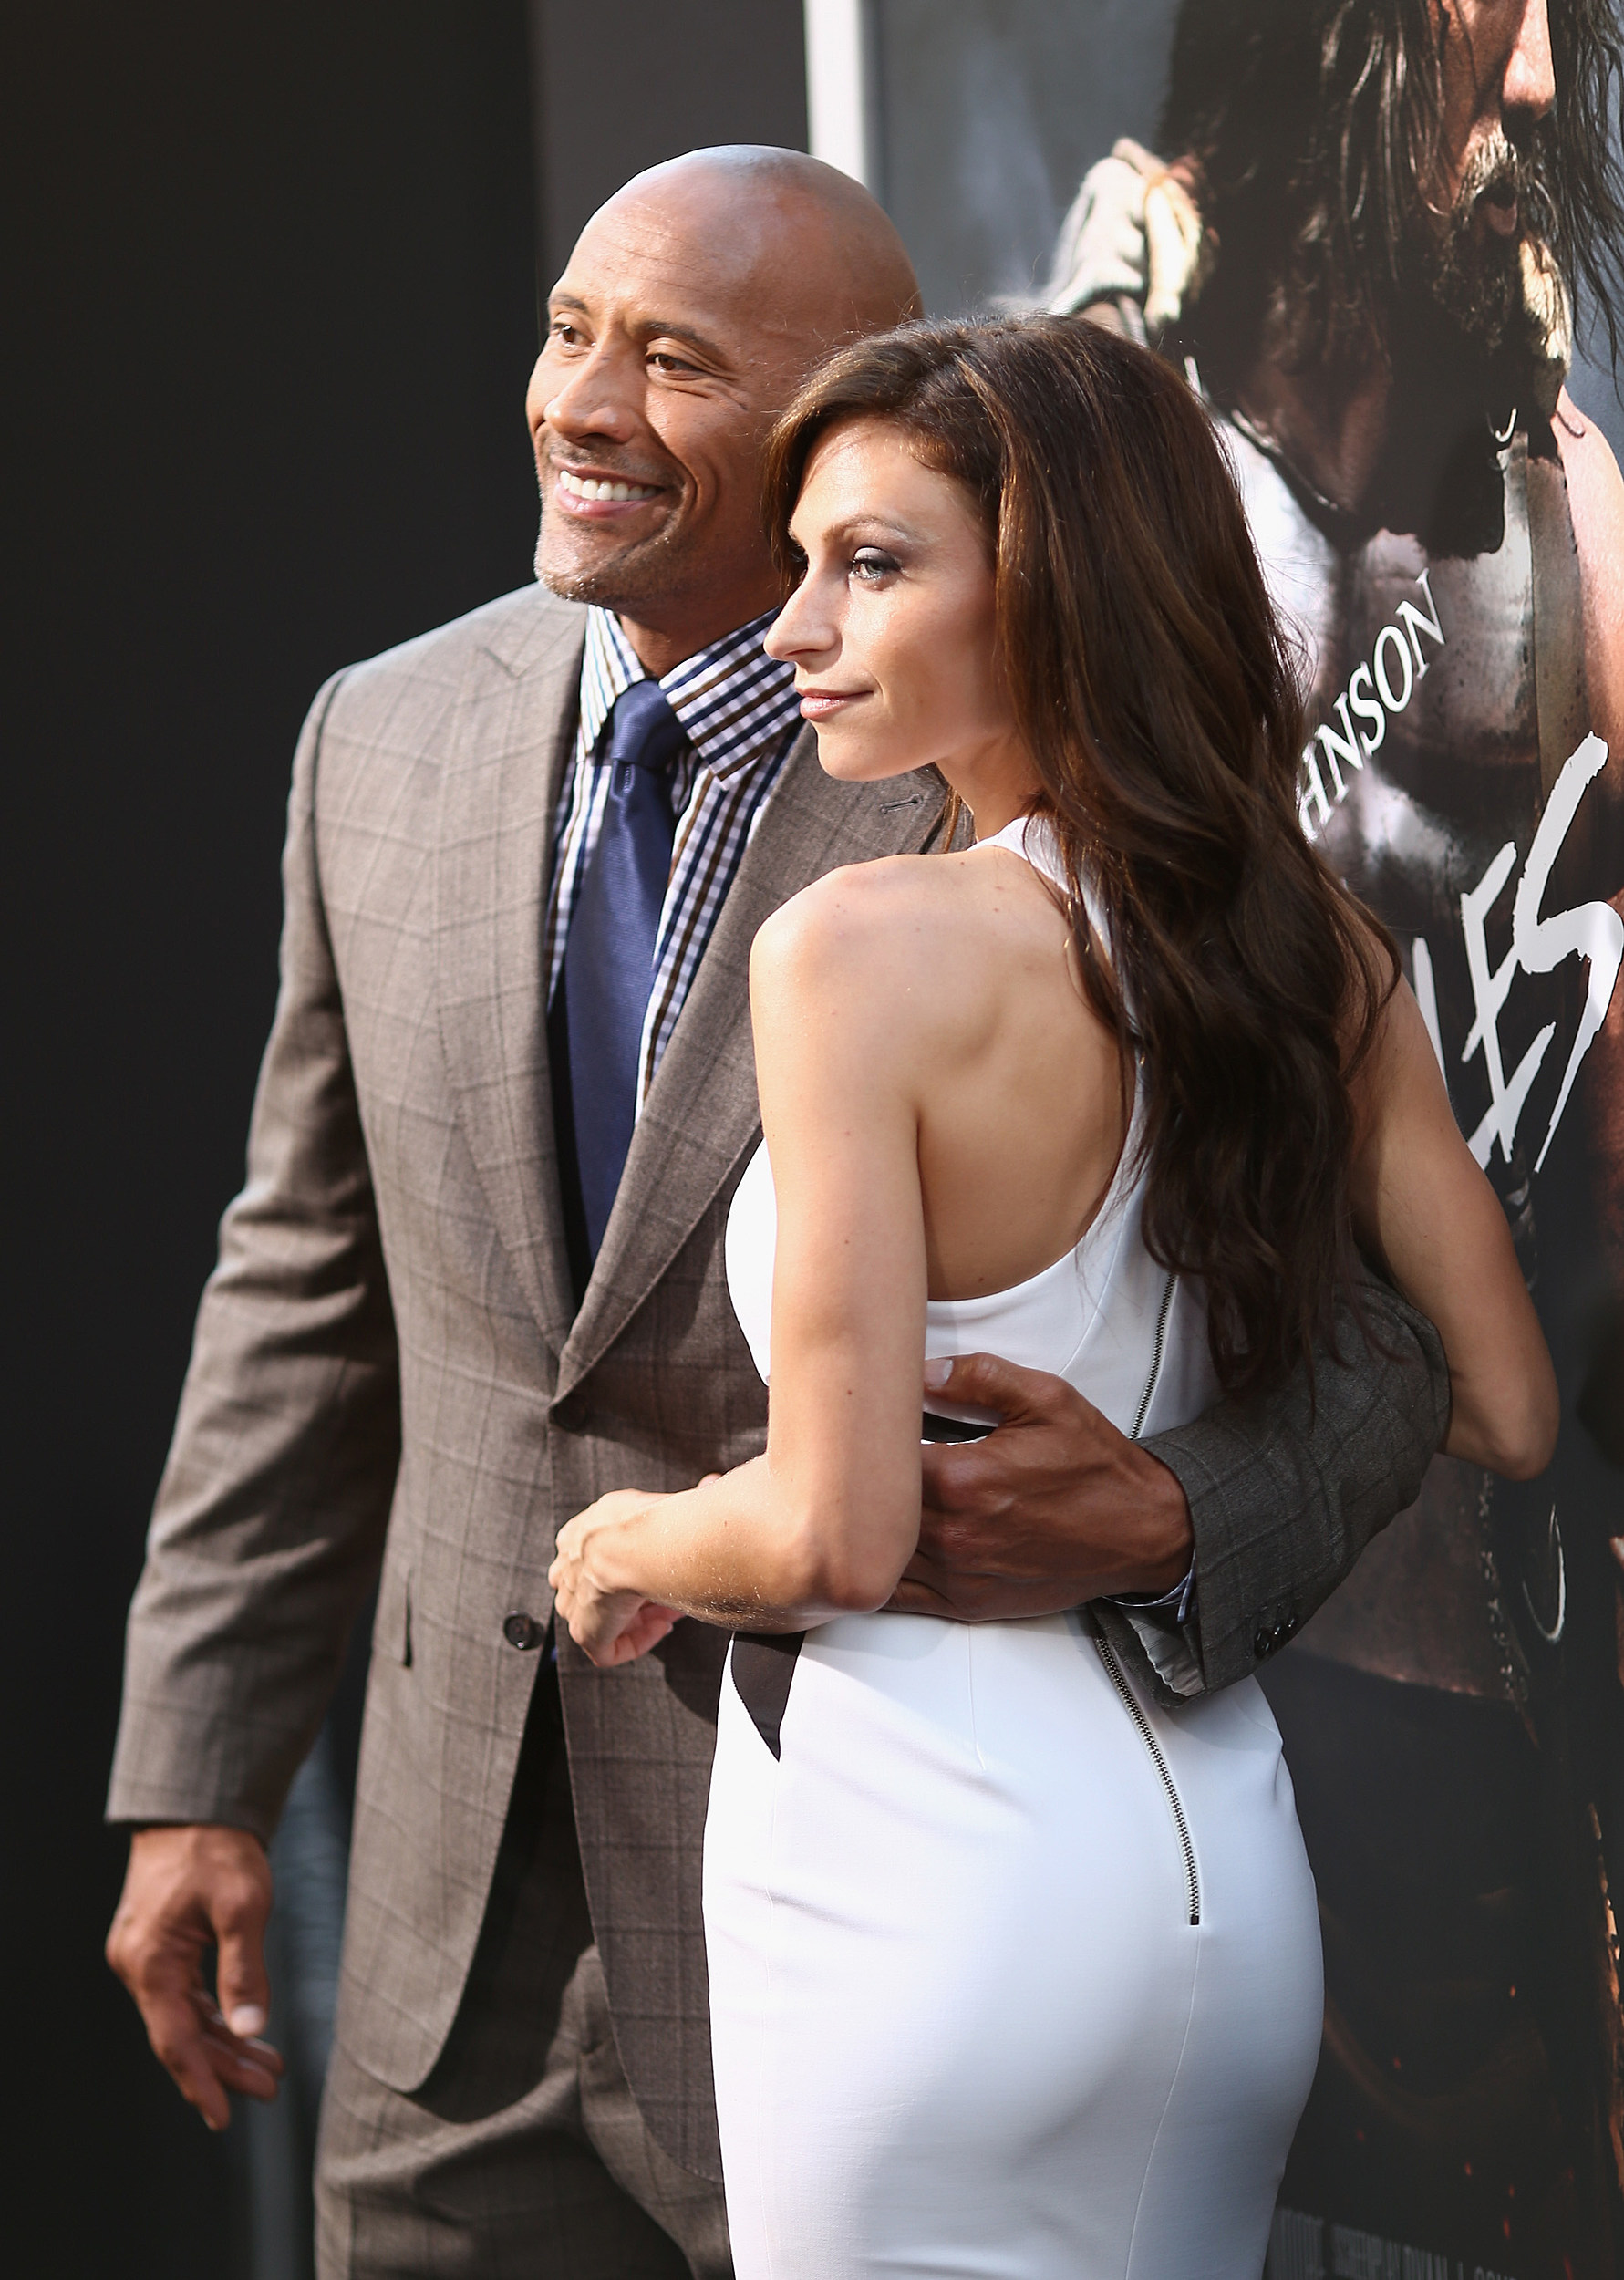 Dwayne johnson and lauren hashian attend the premiere of paramount